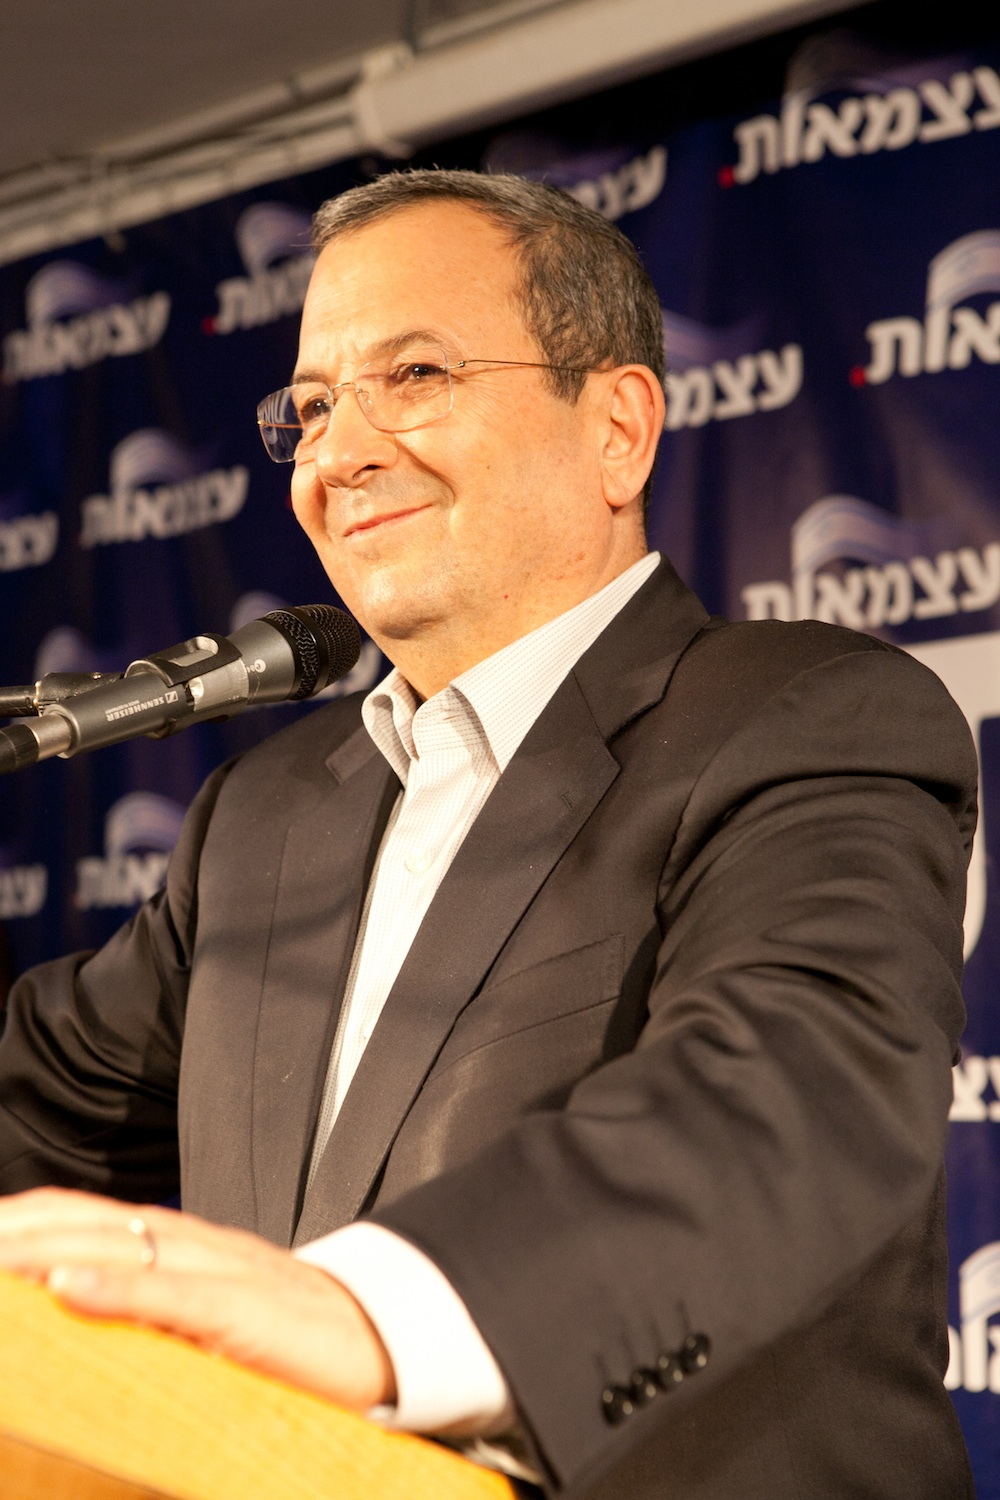 ehud_barak_official.jpg